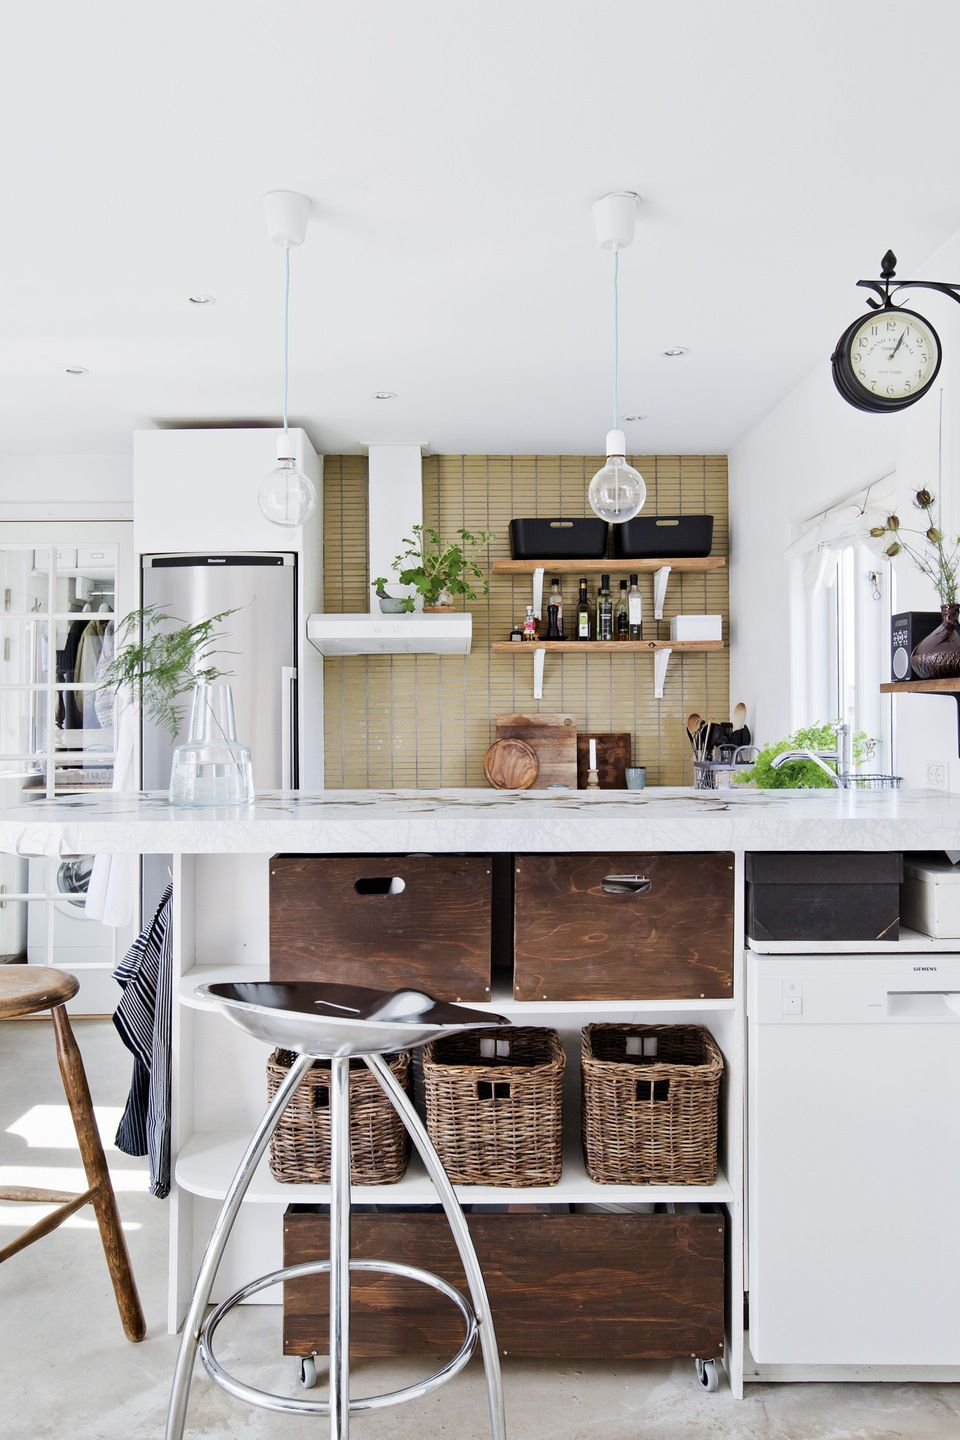 Country chic in Denmark